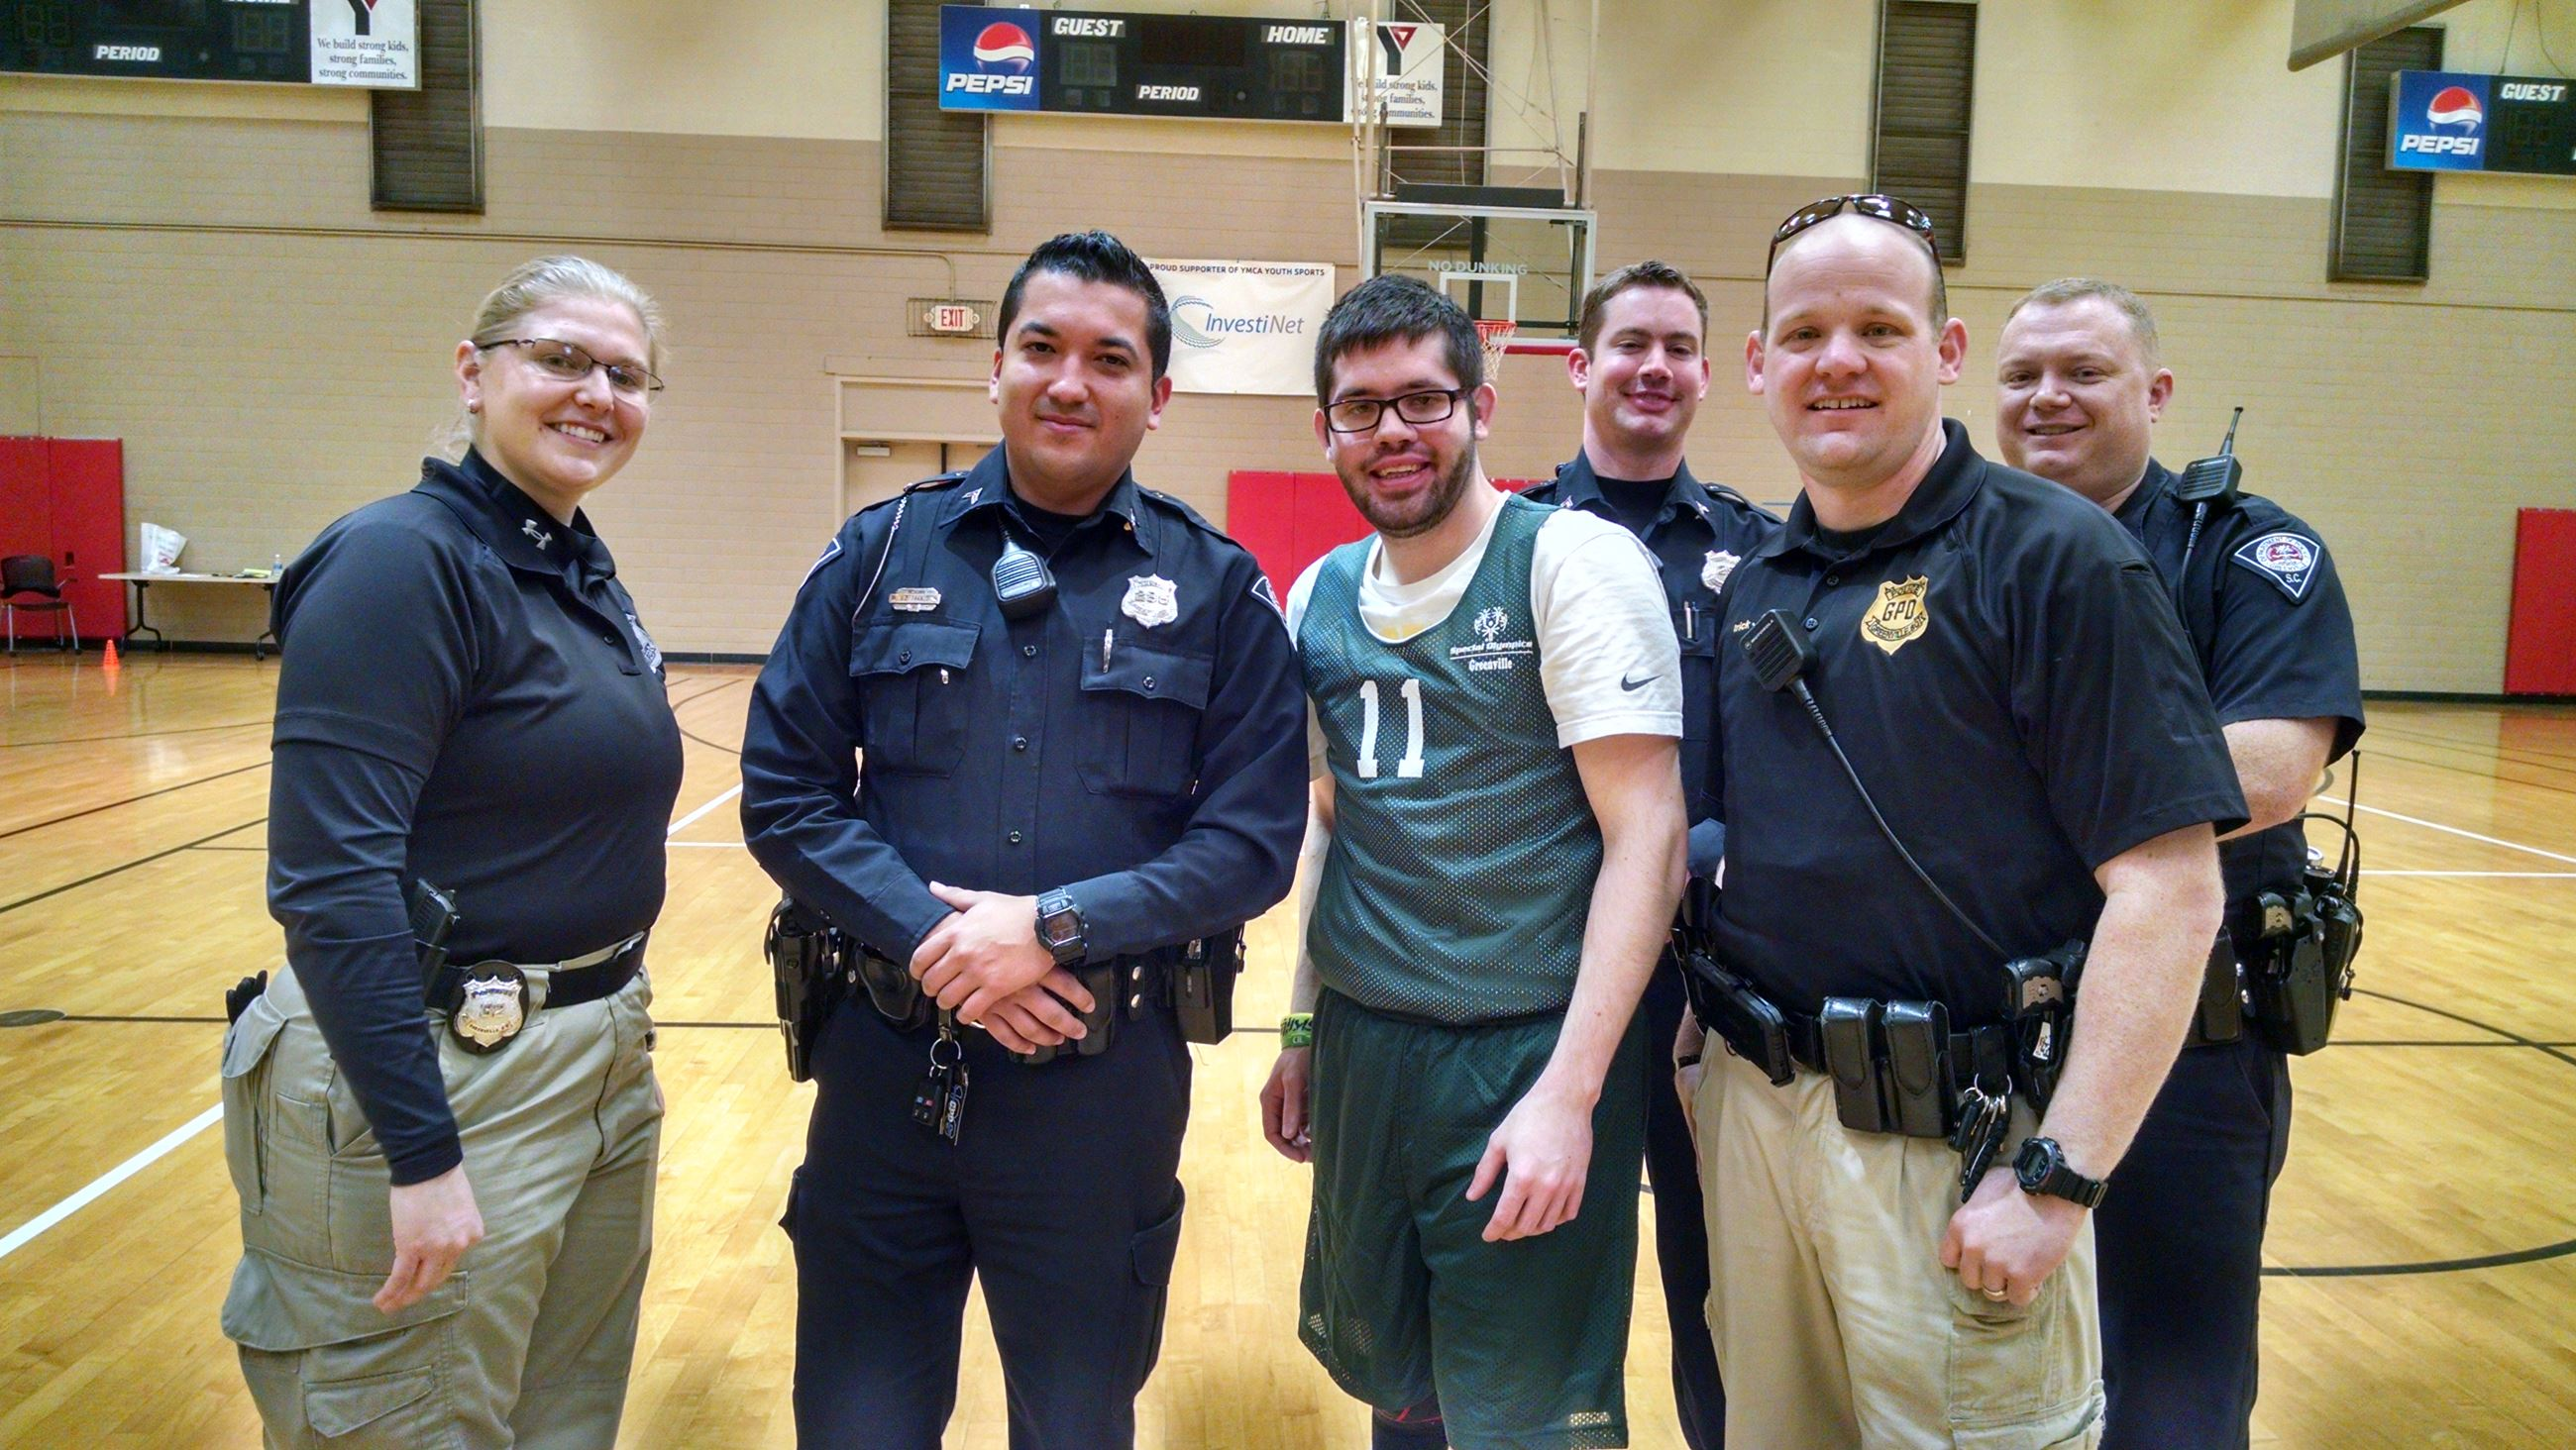 Officers Lepak, Franco, Sample, Leewood, and Sergeant Irick declared the Special Olympics Basketball Invitational open on Feb 10, 2017.